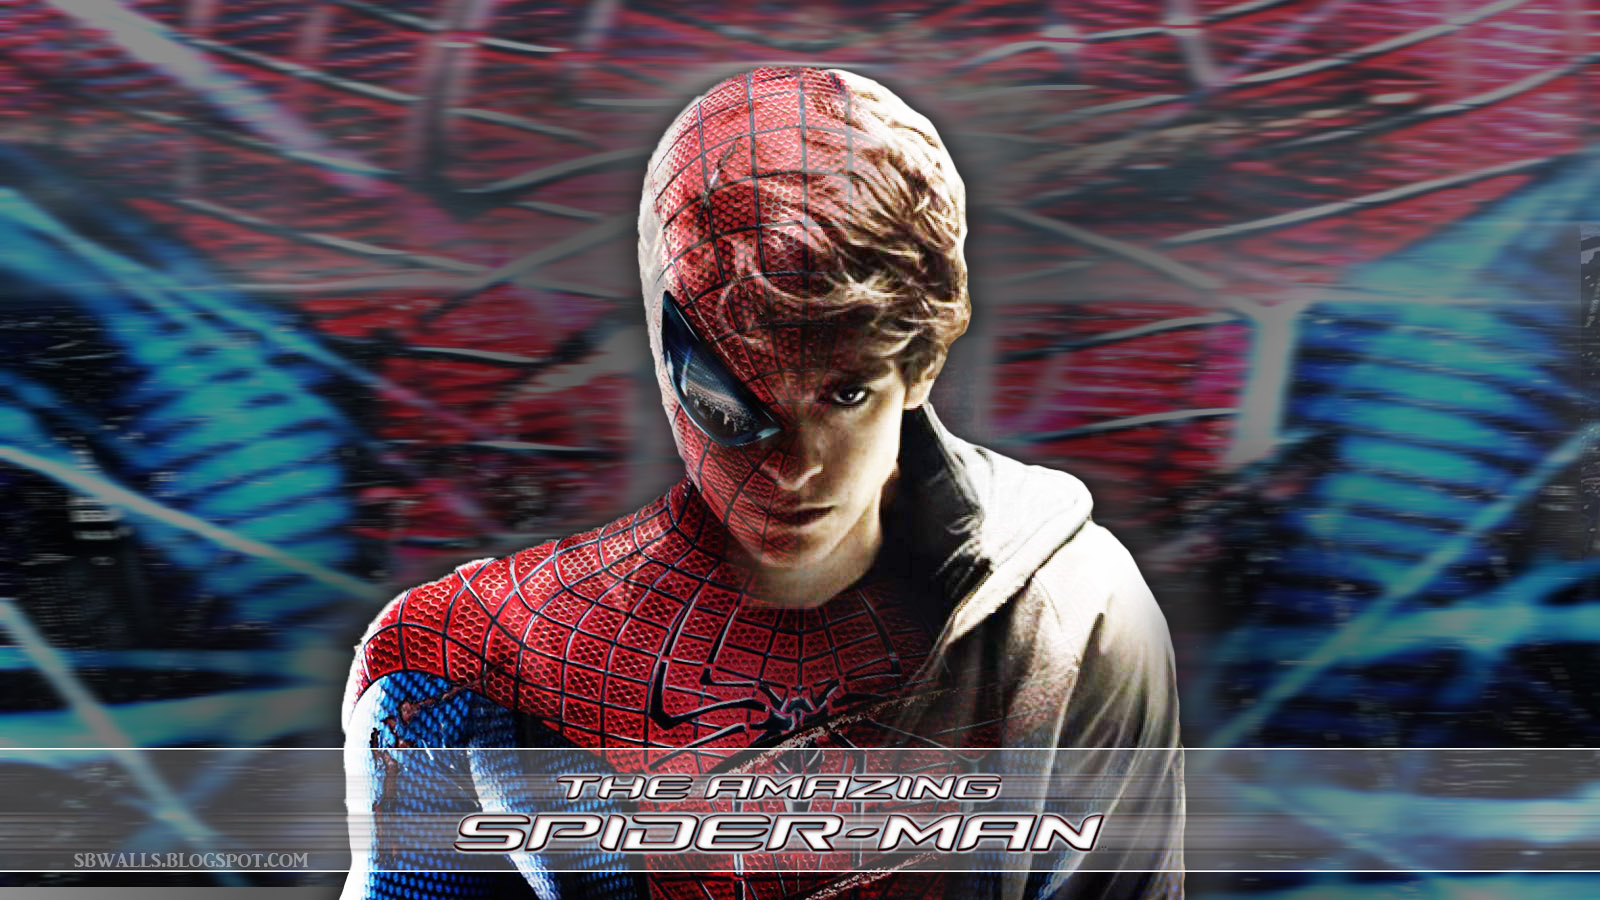 Spiderman-Wallpaper-the-amazing-spider-man-2012-31480798-1600-900